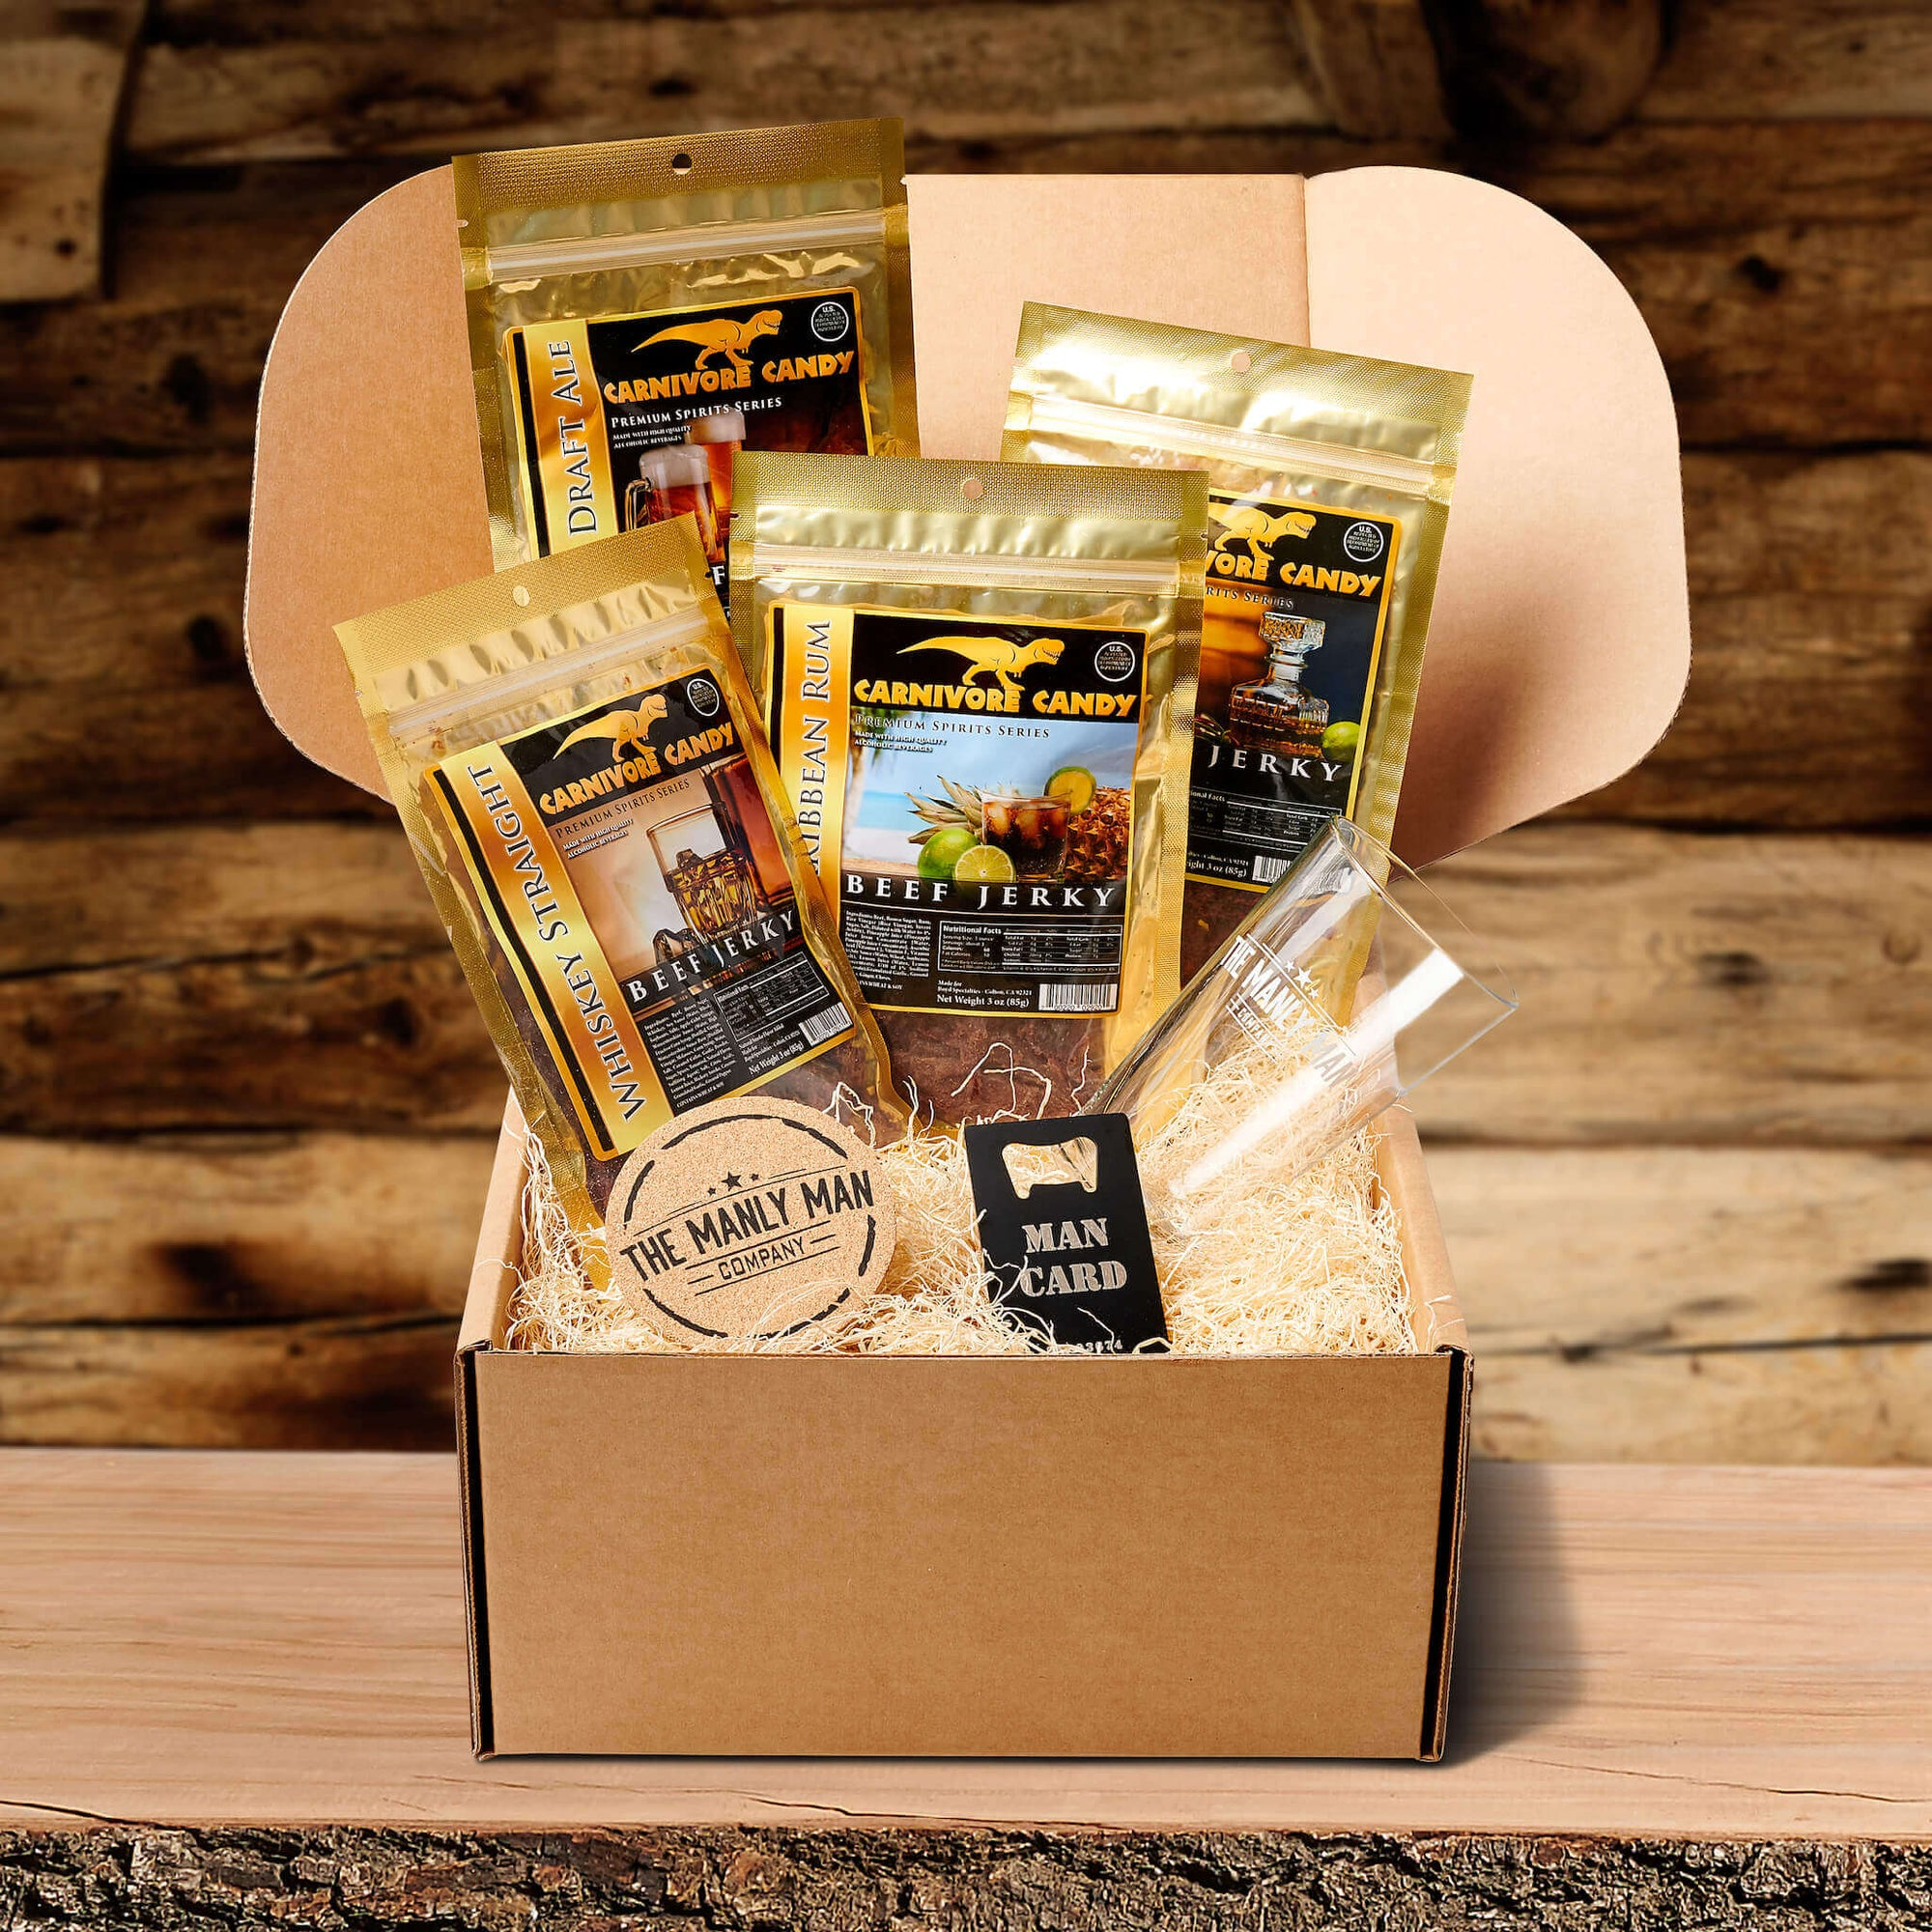 Manly jerky snack gift set, sitting on log table